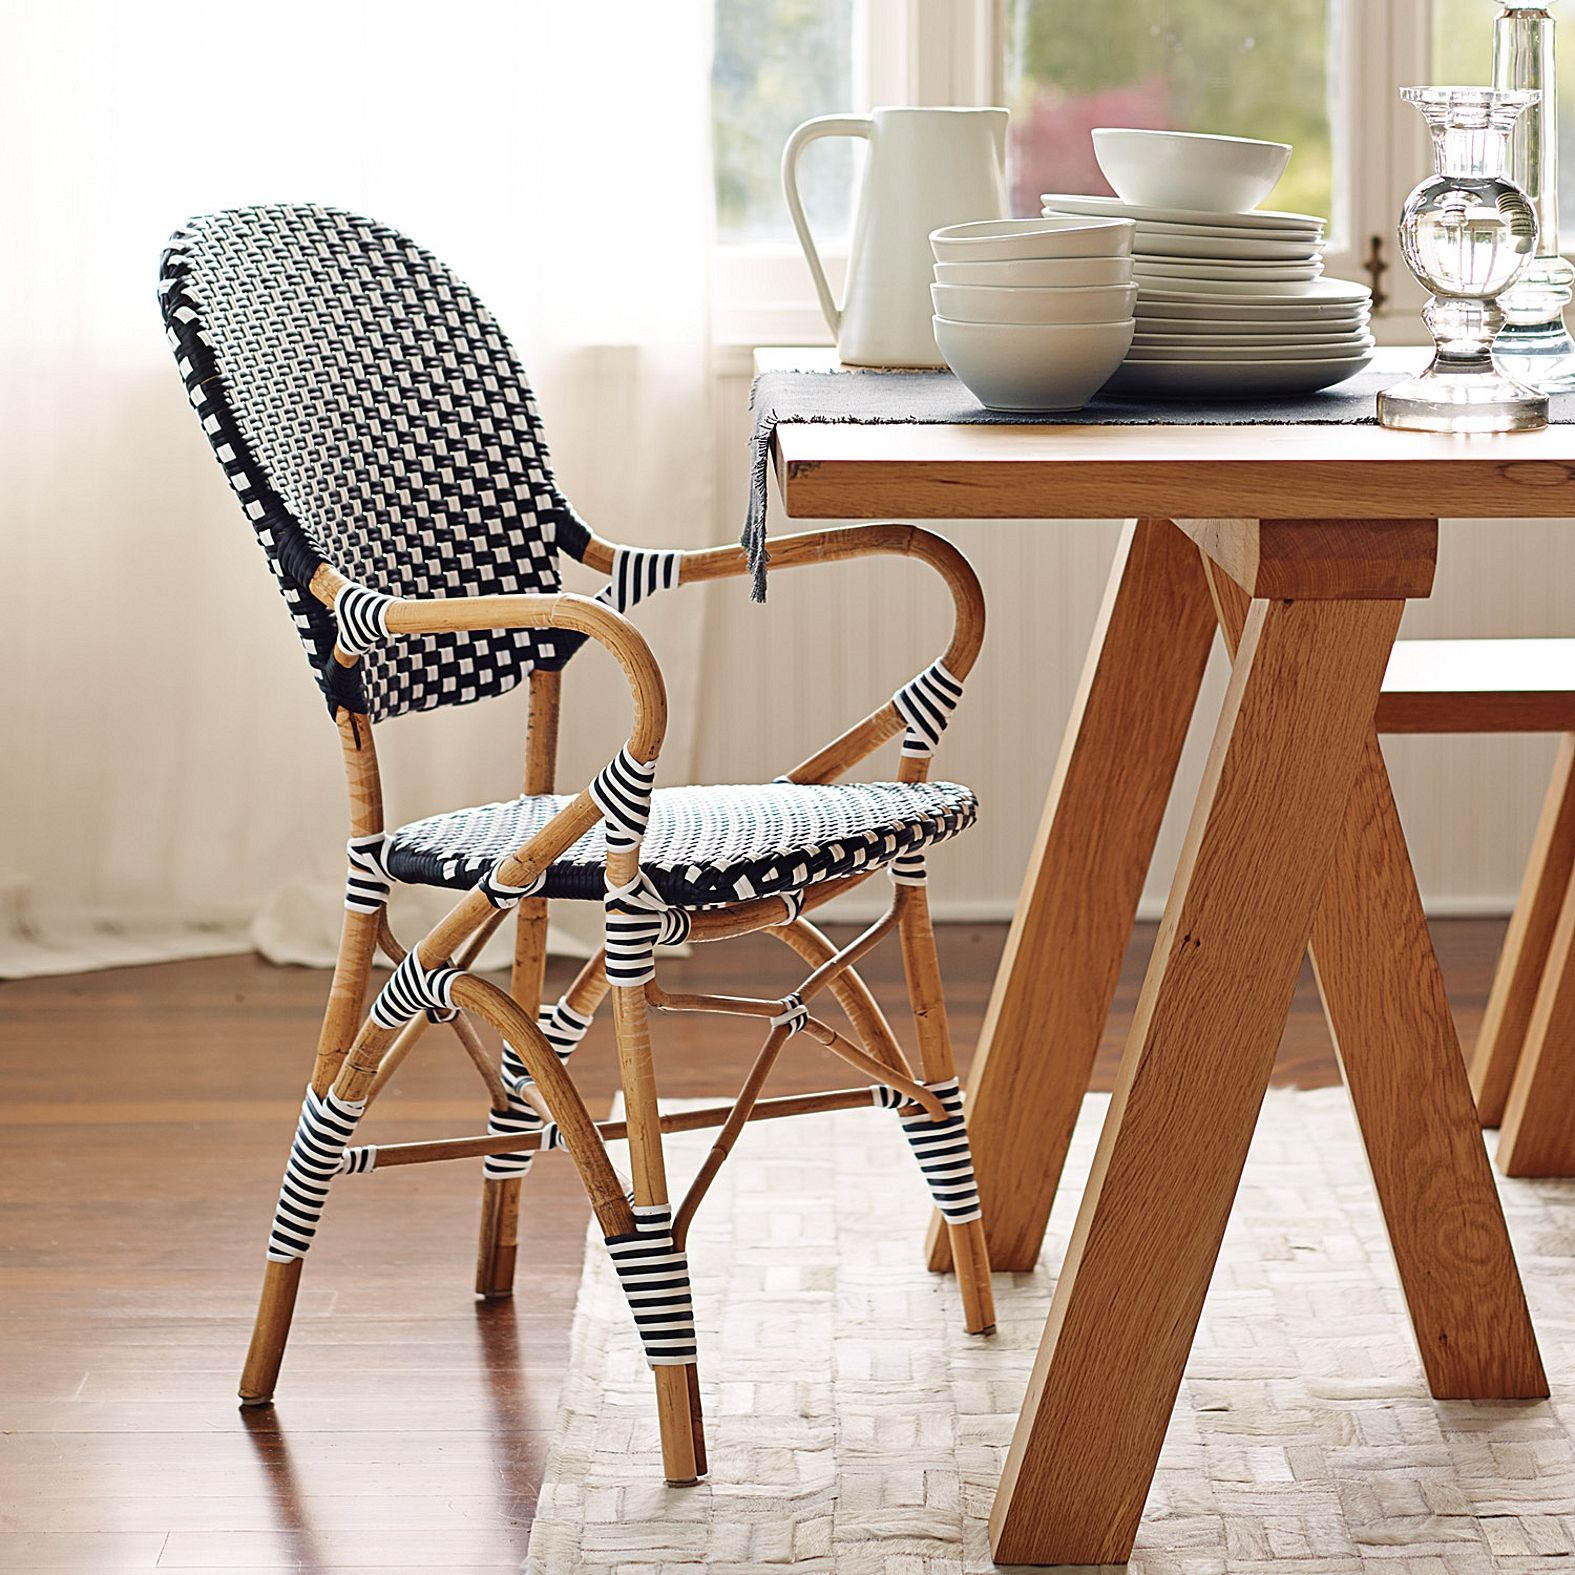 Riviera Armchair Black Serena Lily Home Offices Pinterest # Muebles Riviera